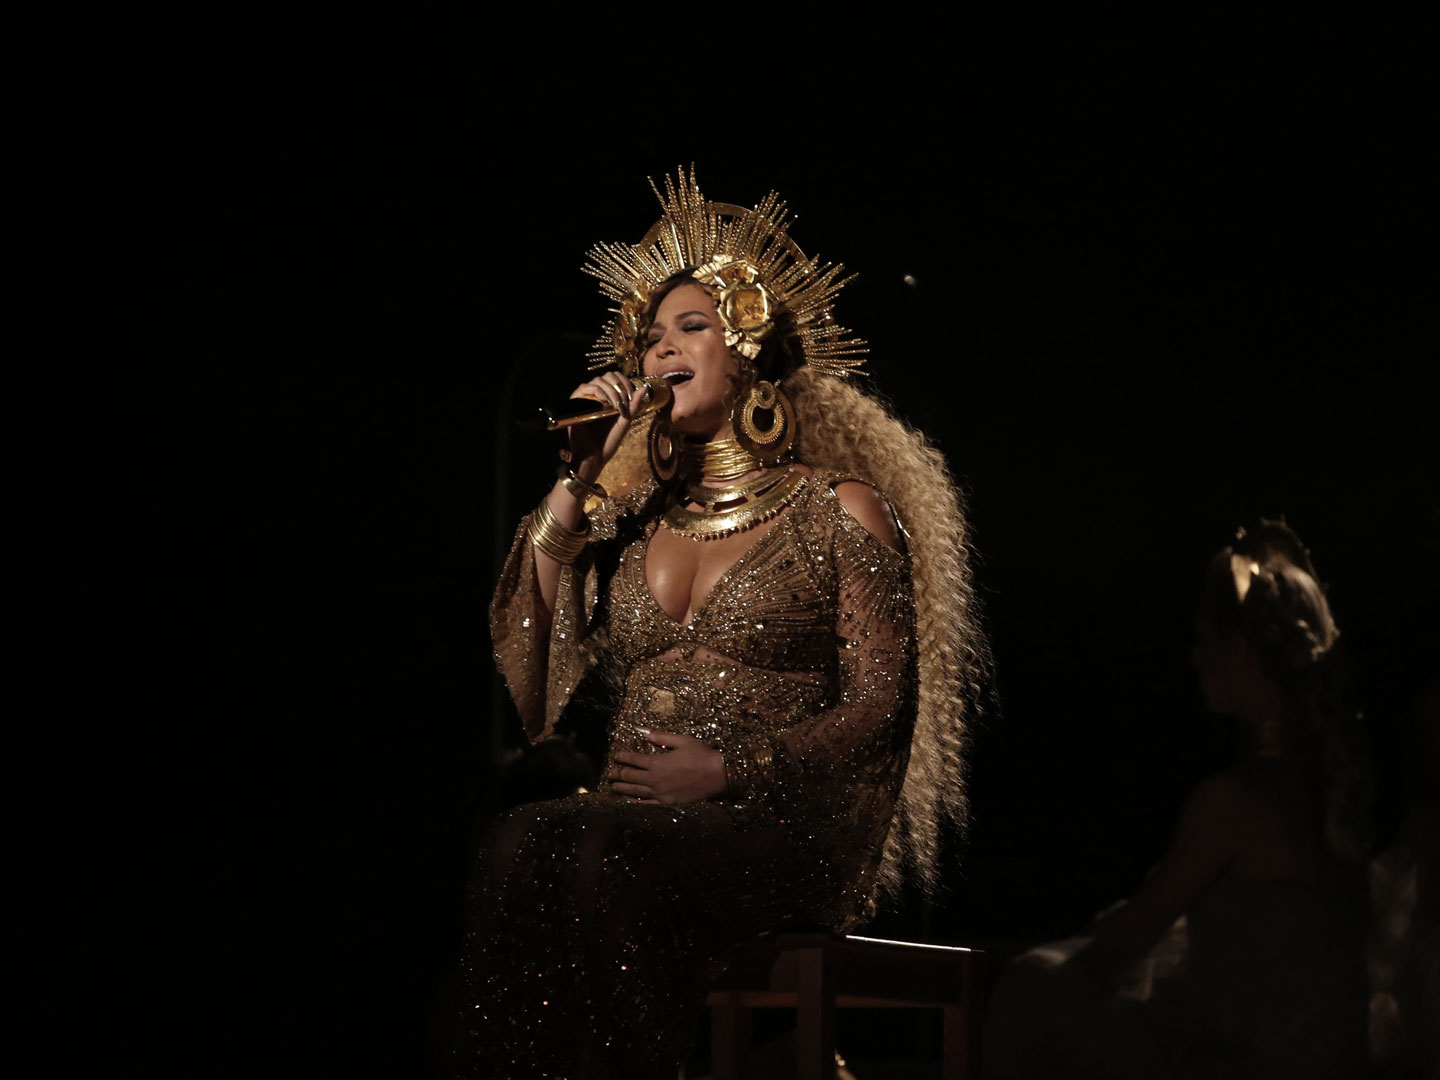 Beyoncé performing at the 2017 Grammy Awards